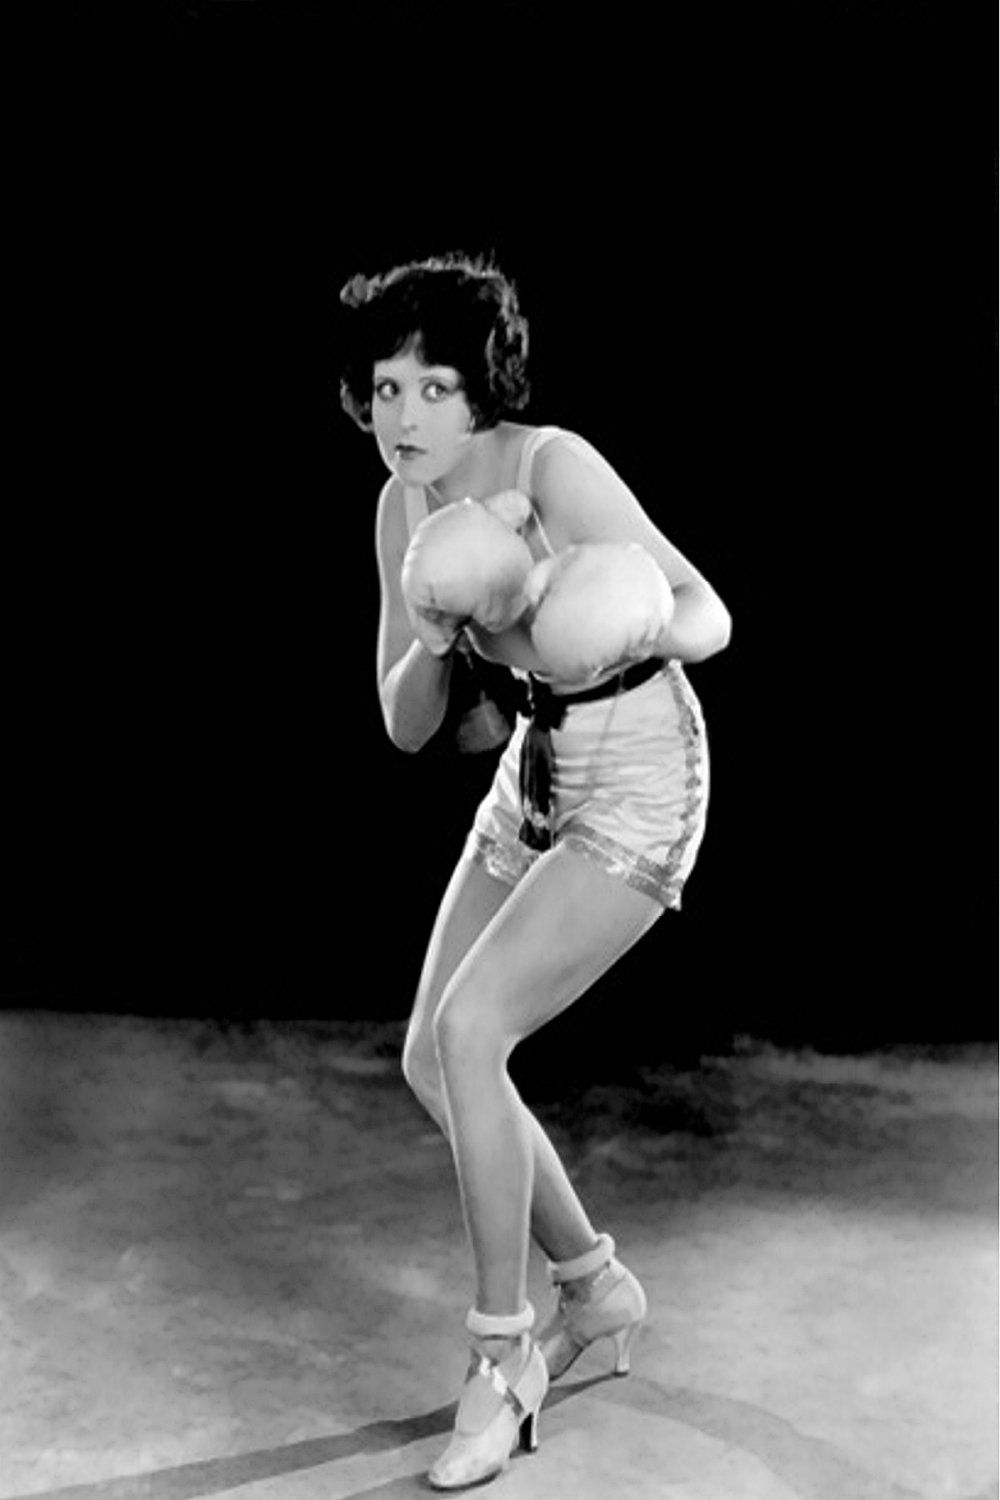 Digital Download: Vintage BW Photo of a 1920s Woman Boxer in Satin Boxing  Shorts & Gloves. $3.00, via Etsy.